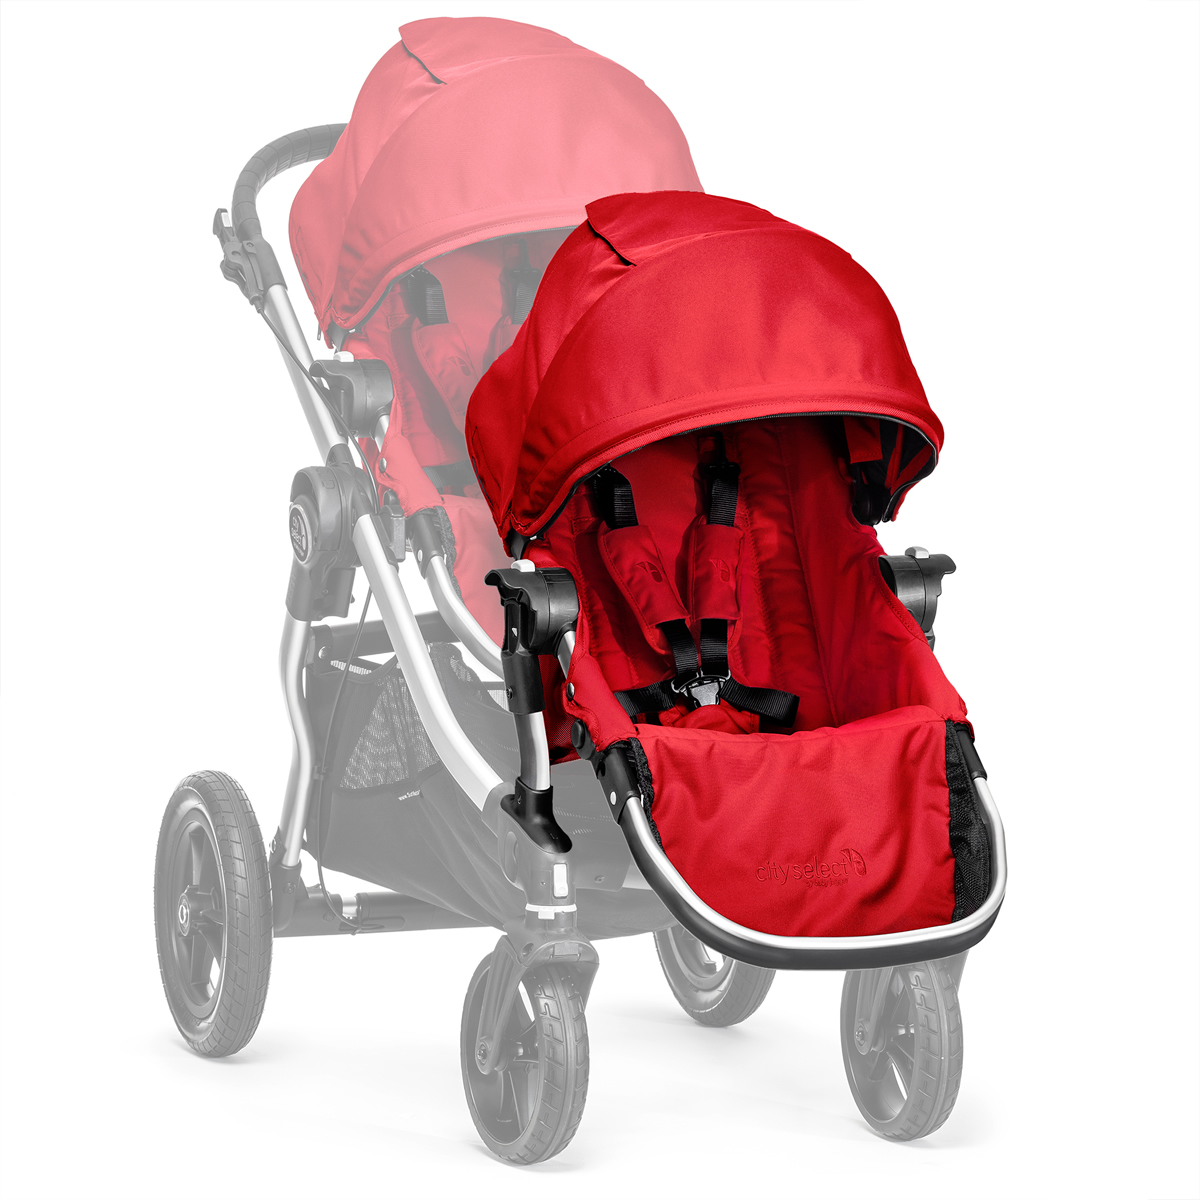 Baby Jogger City Select Second Seat Kit - Ruby